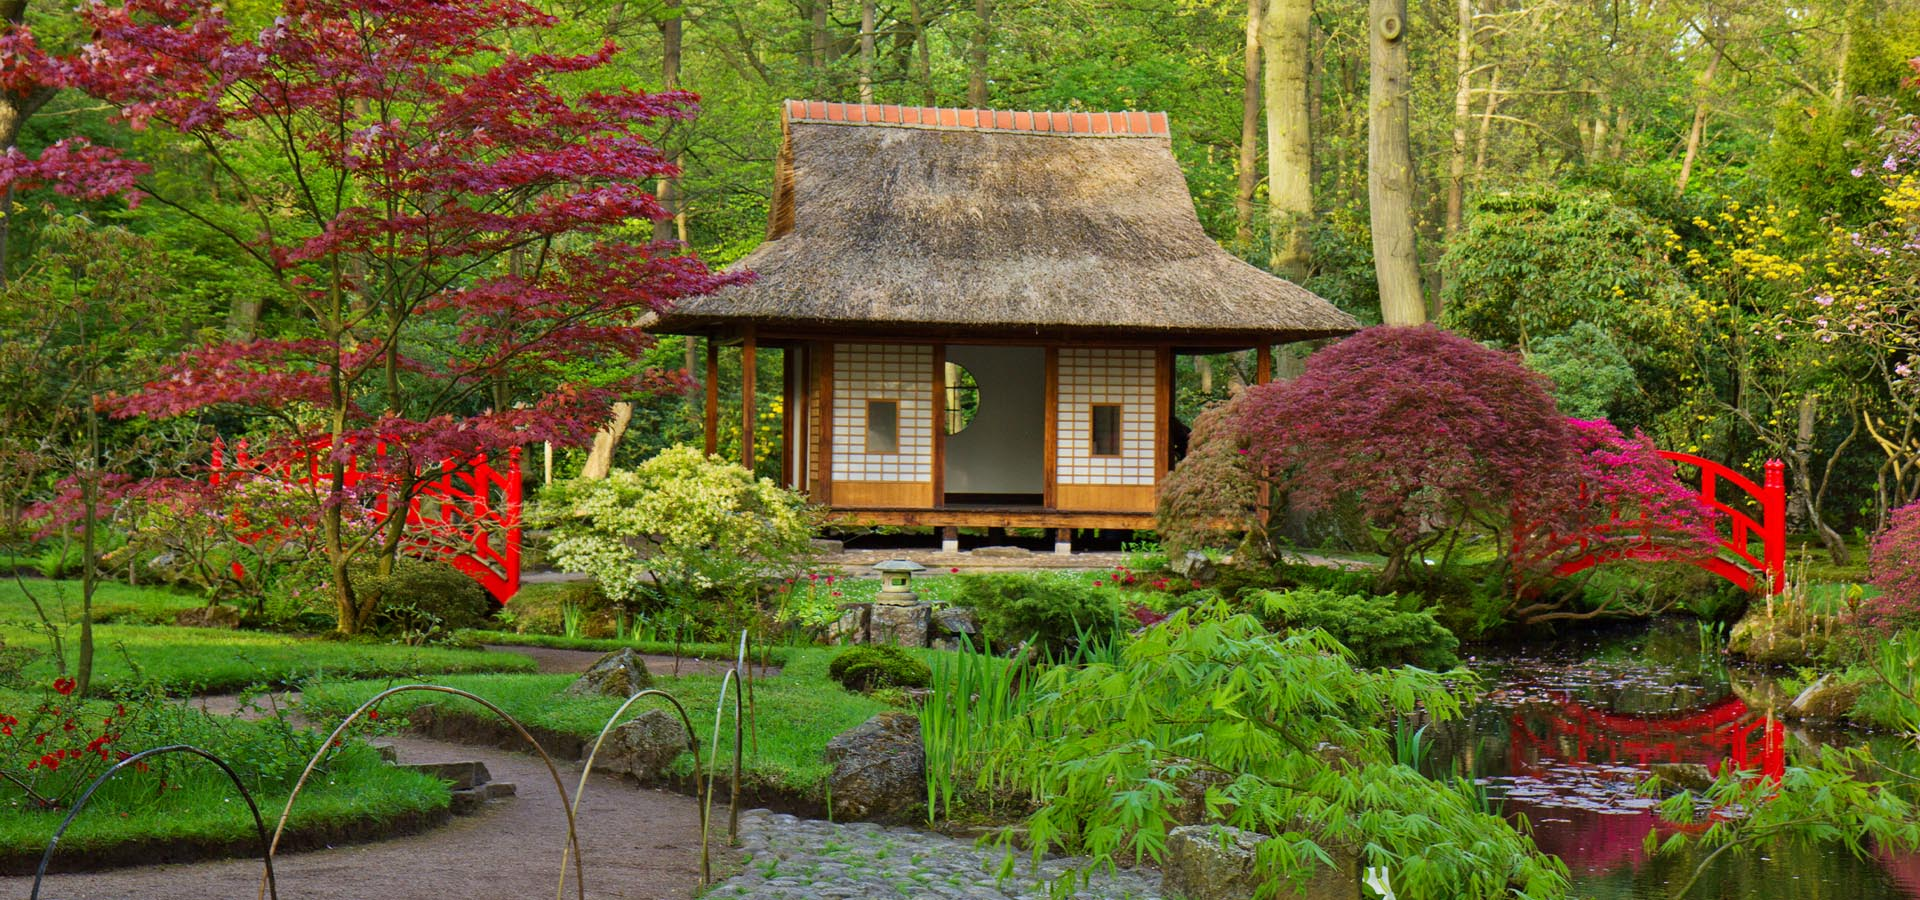 How to find the right colour garden gravels for a Japanese-style garden